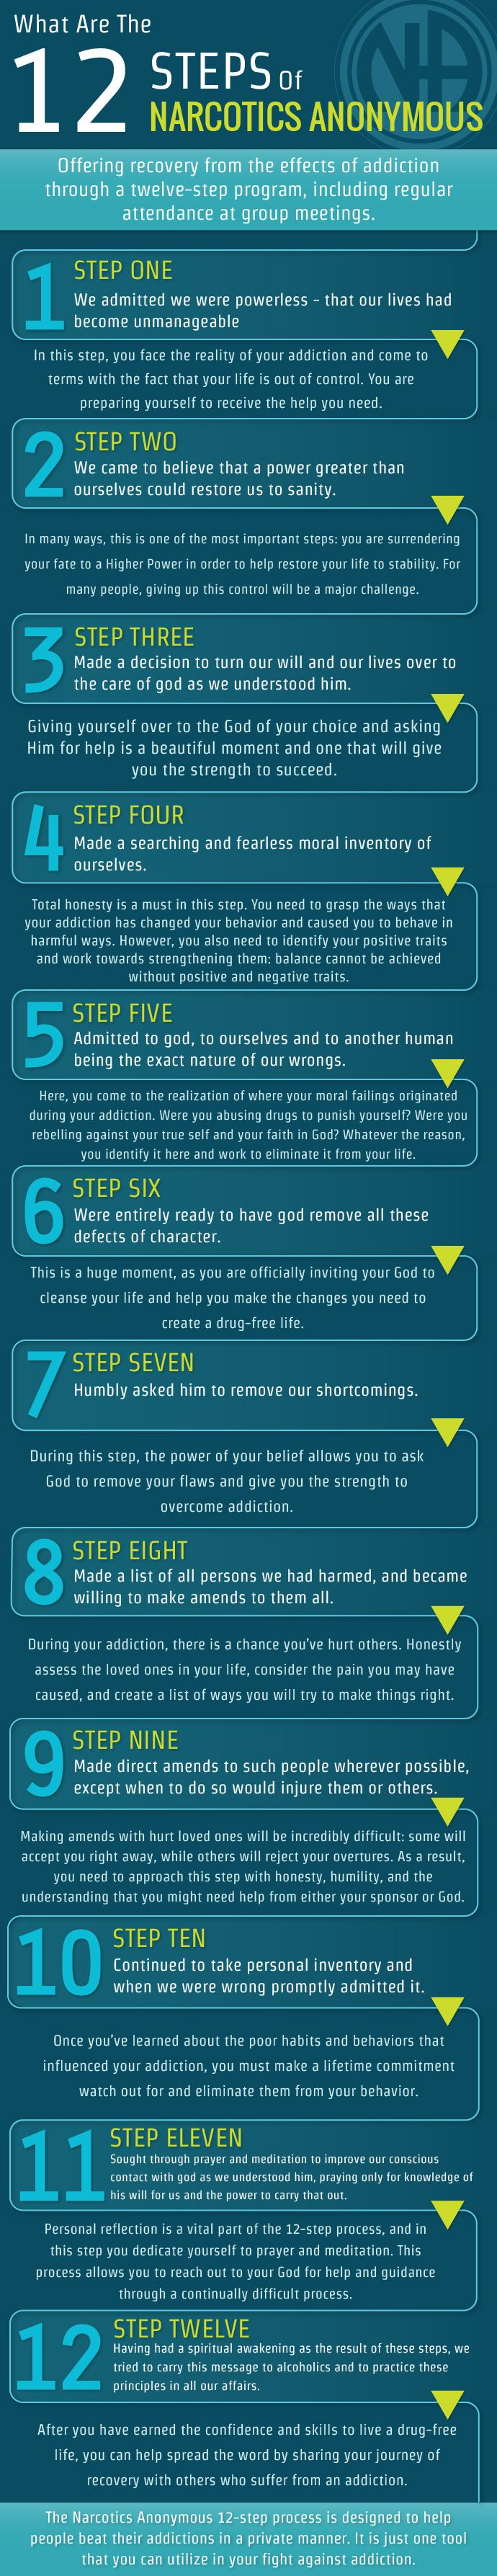 narcotics anonymous: twelve steps to recovery essay The narcotics anonymous 12-step process is designed to help people beat their addictions in a private manner it is just one tool that you can utilize in your fight against addiction.